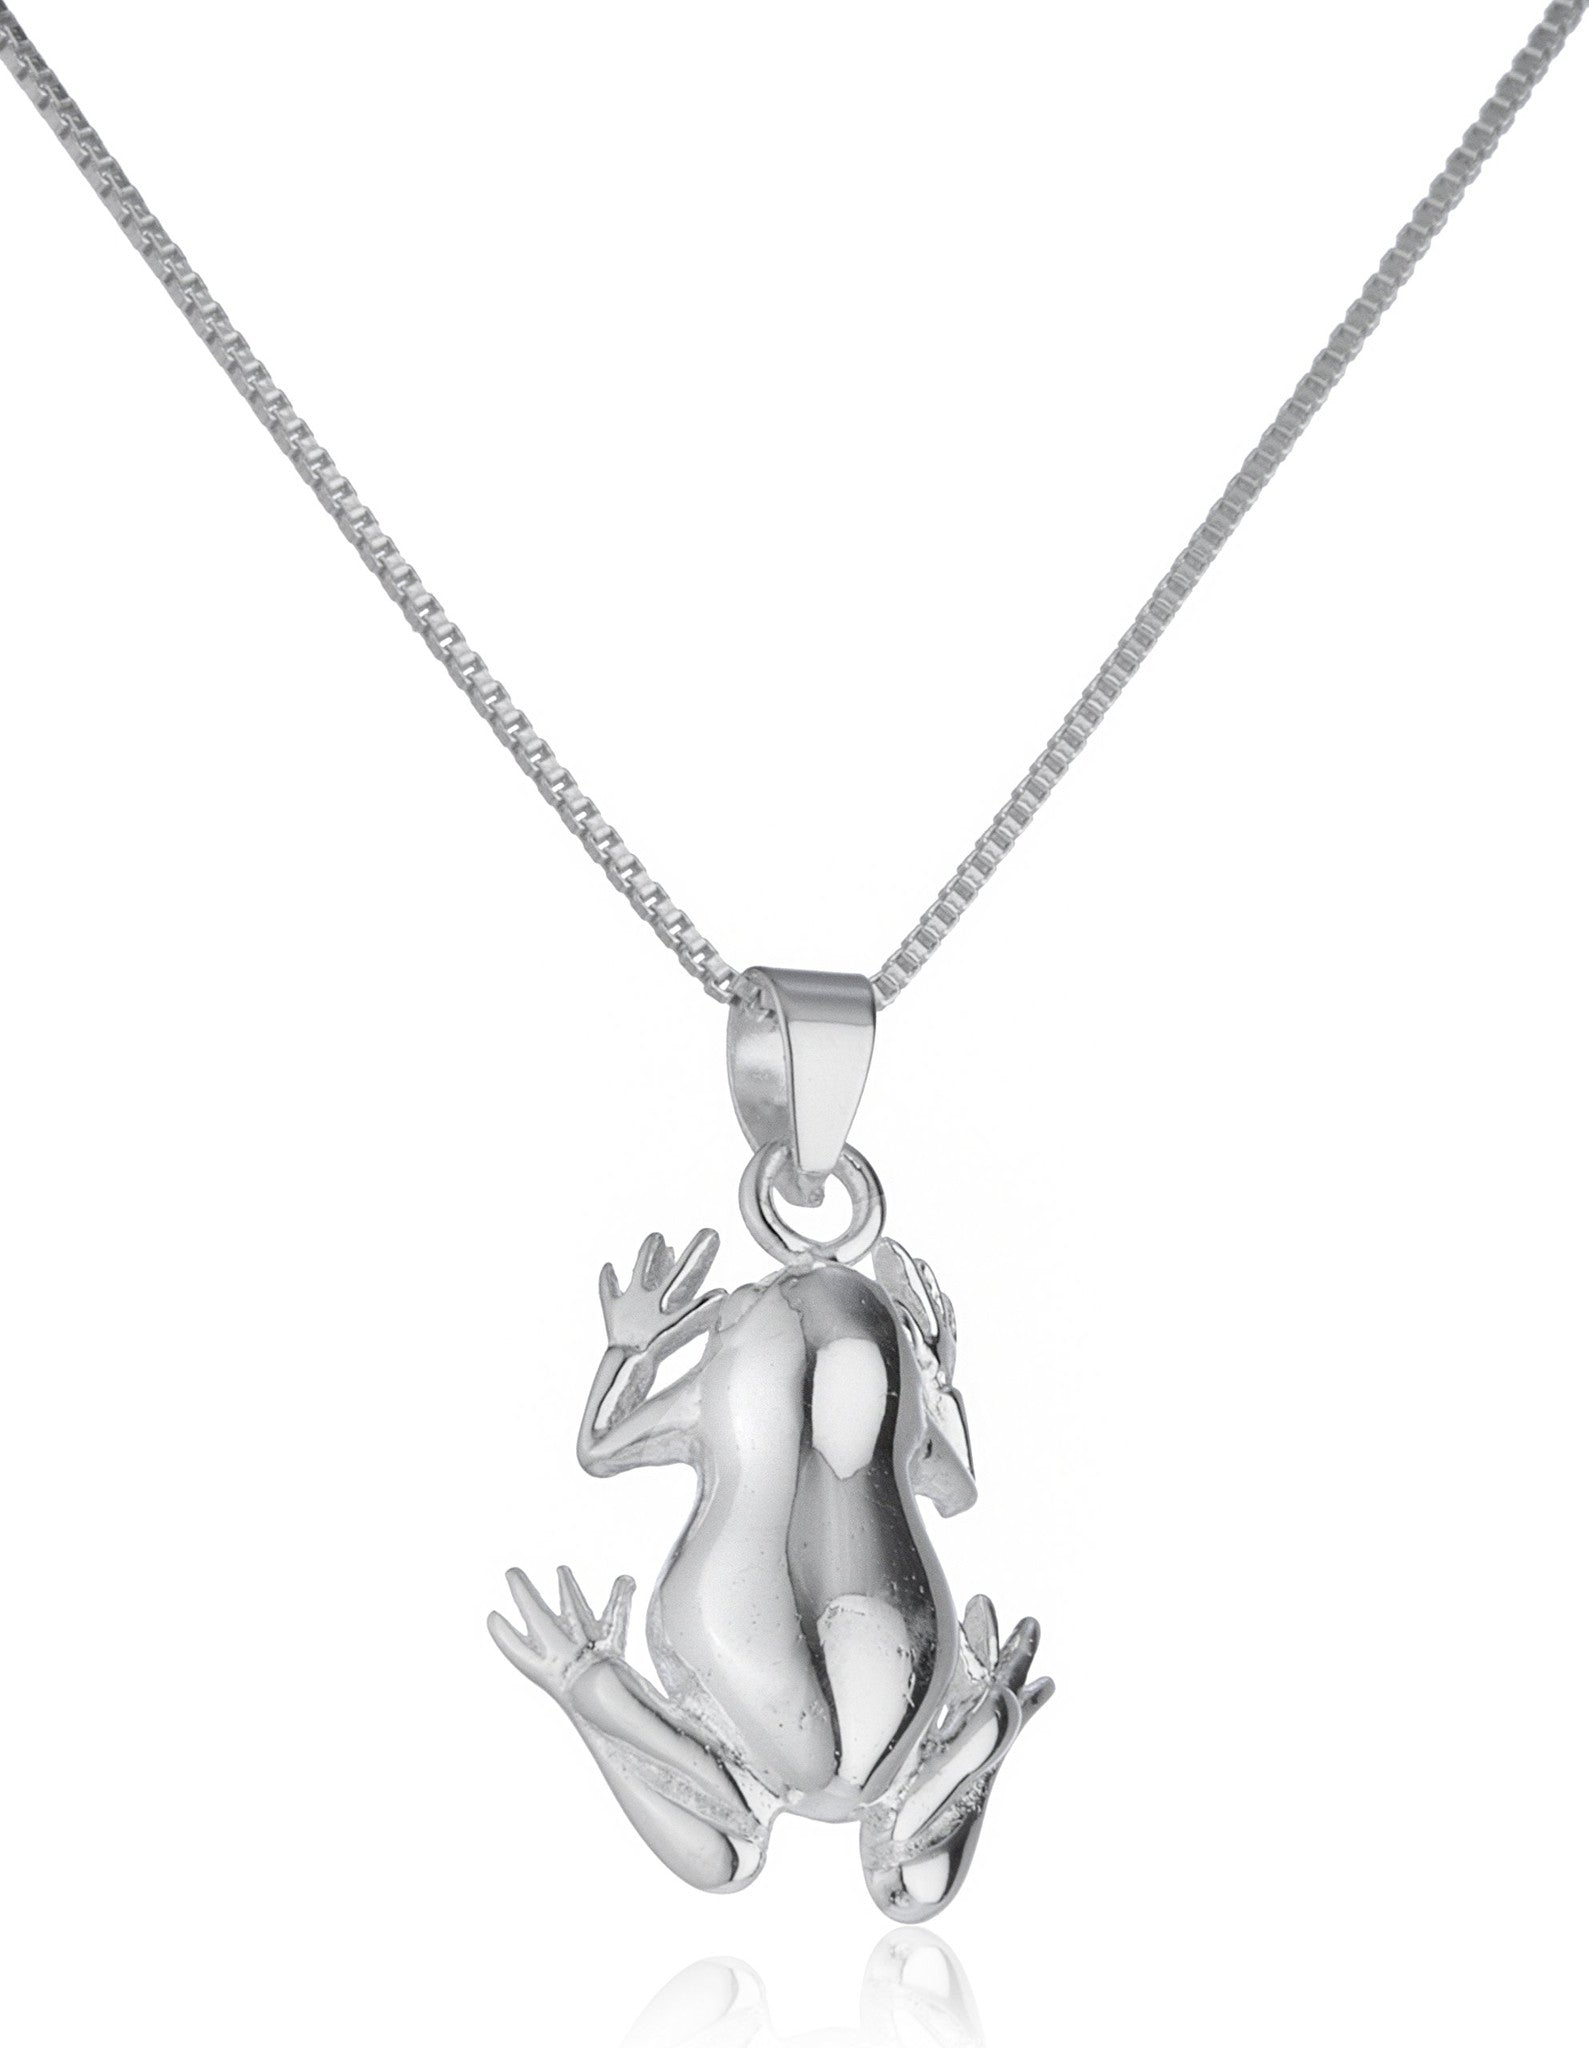 925 sterling silver frog pendant with an 18 inch box chain necklace real 925 sterling silver frog pendant mozeypictures Image collections